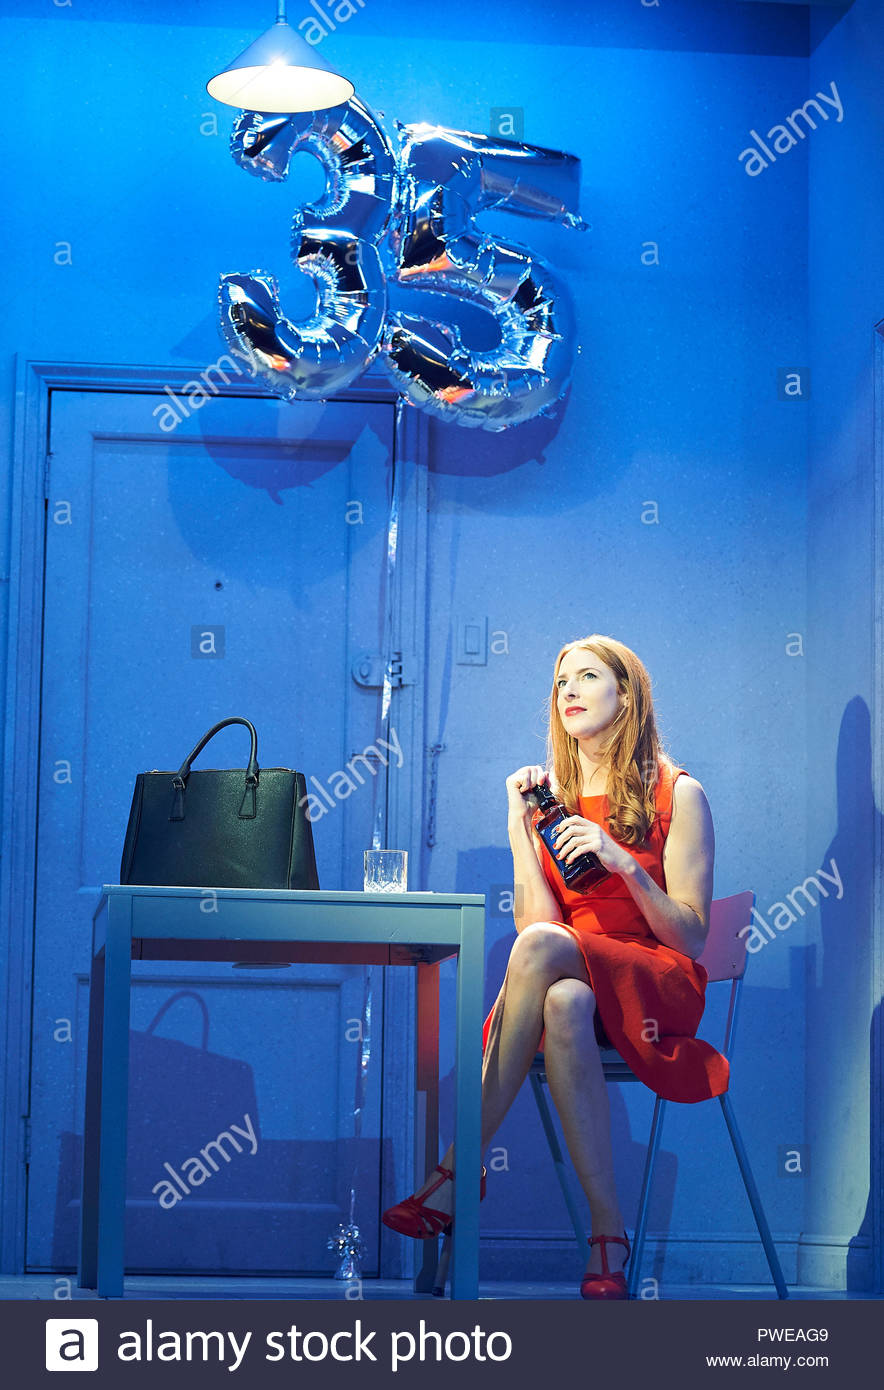 London, UK, 16th Oct 2018. Company, a Musical Comedy, Music and Lyrics by Stephen Sondheim, book by George Furth. Directed by Marianne Elliott. With Rosalie Craig as Bobbie. Opens at The Gielgud Theatre on 17/10/18. CREDIT Geraint Lewis EDITORIAL USE ONLY Credit: Geraint Lewis/Alamy Live News - Stock Image